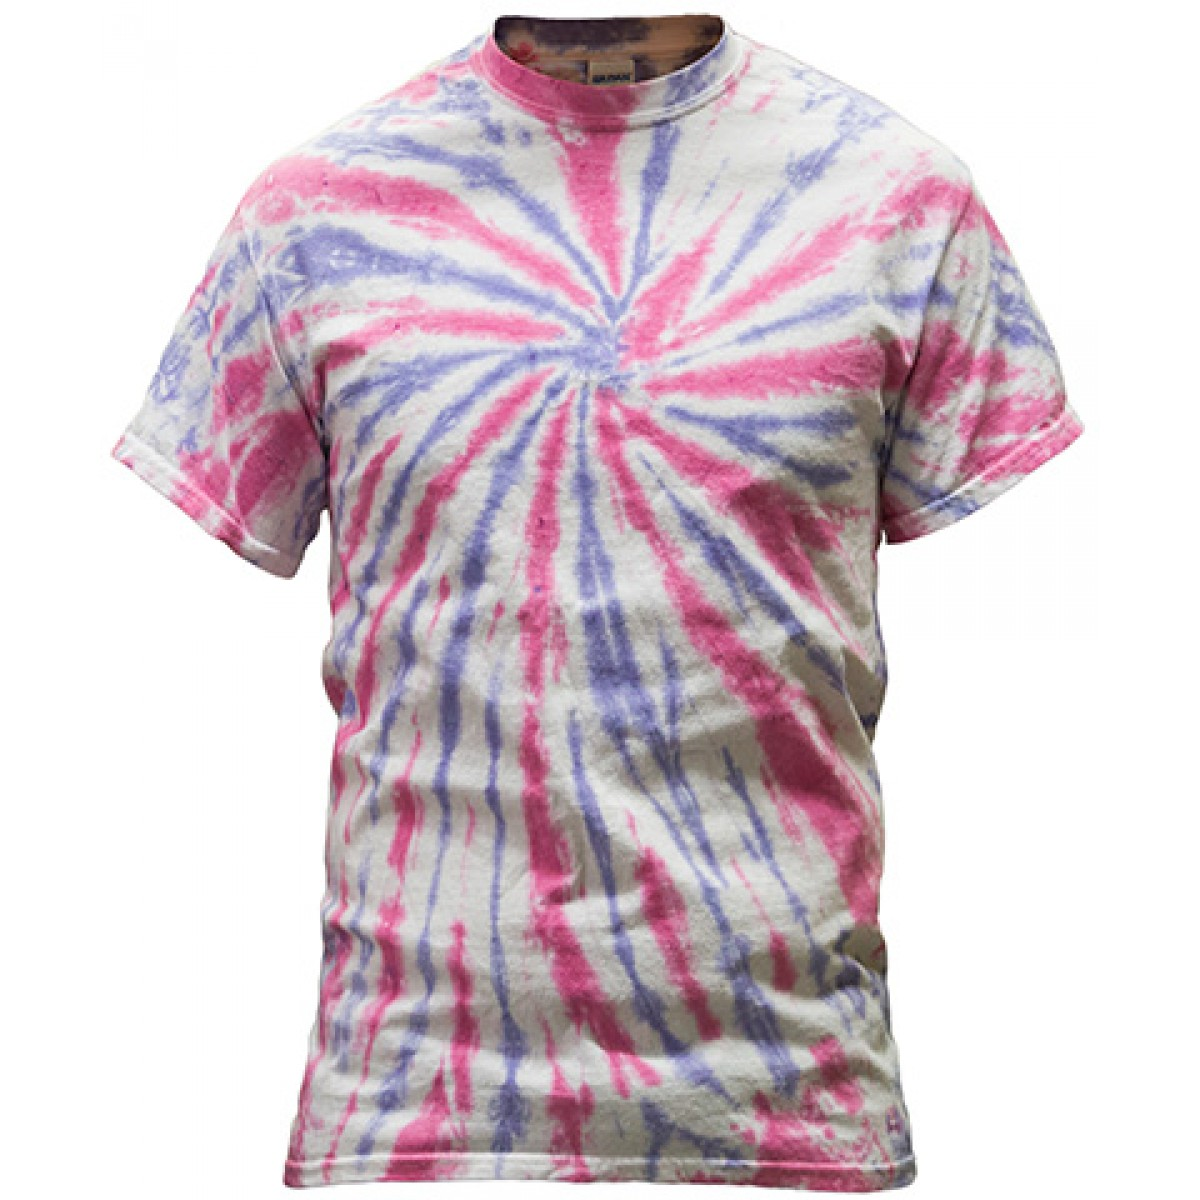 Multi-Color Tie-Dye Tee -Pink/Purple-YM